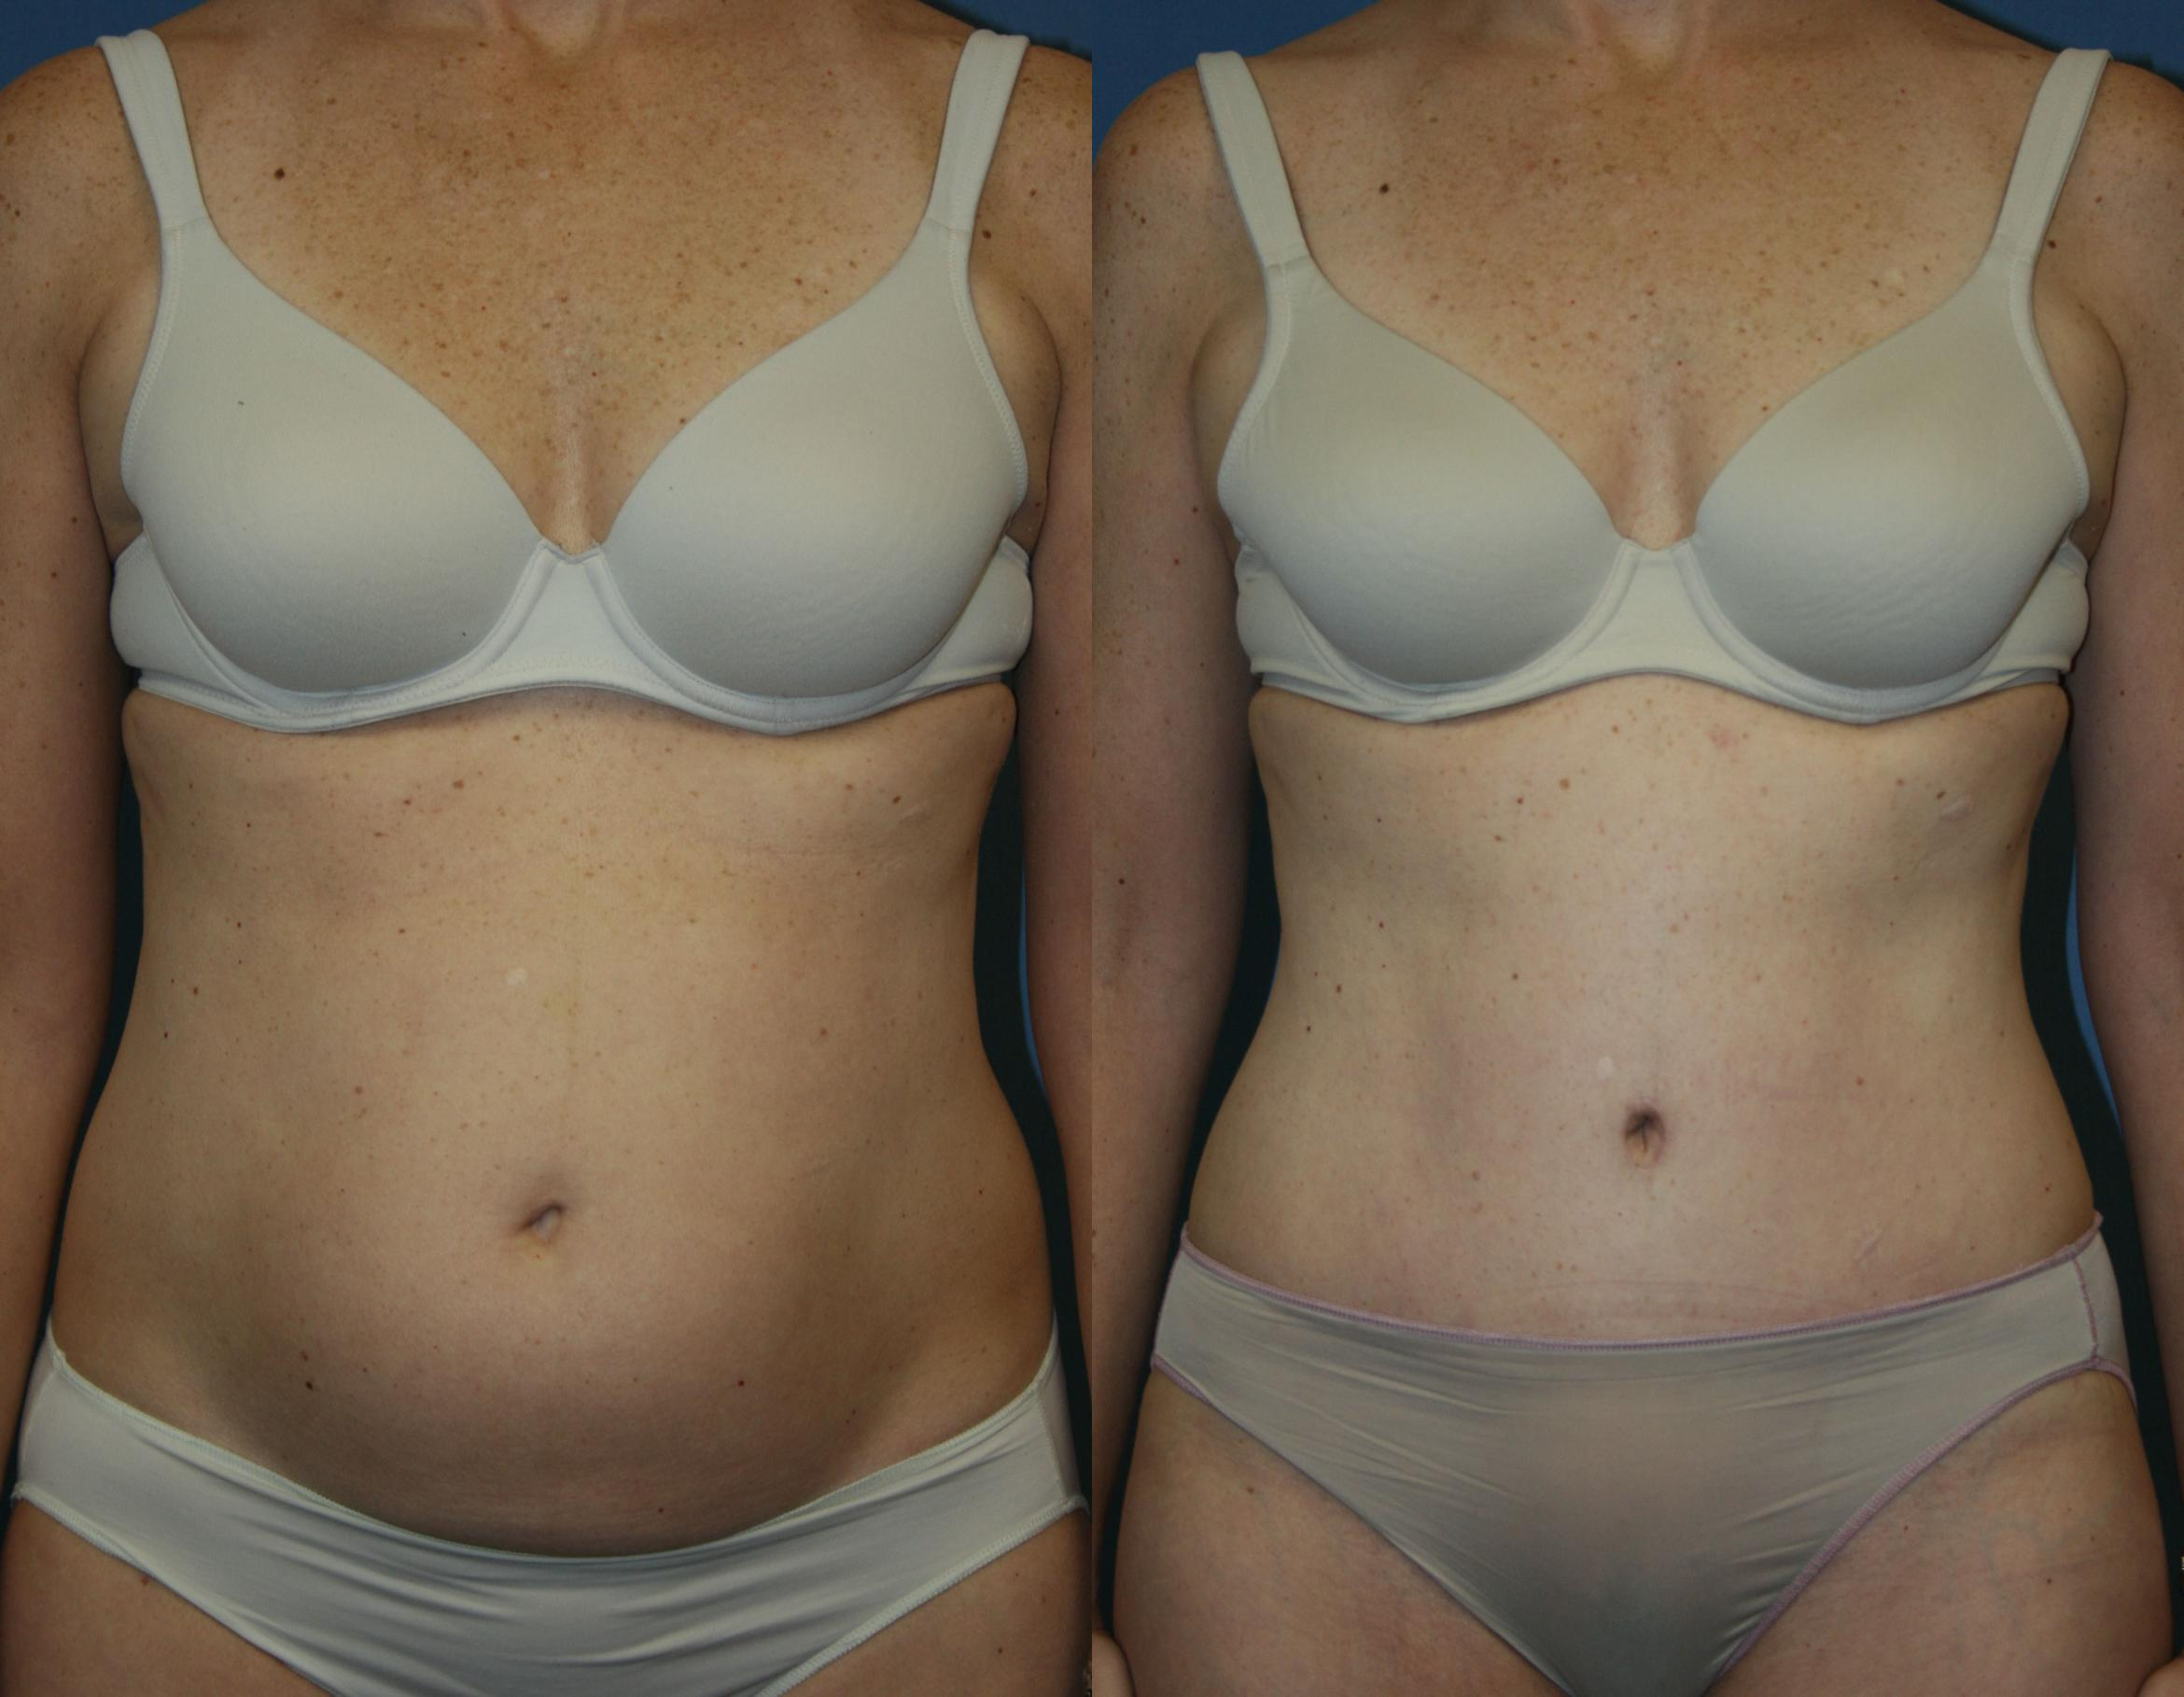 Tummy Tuck Case 39 Before & After View #1 | Downers Grove, IL | Dr. Sandeep Jejurikar